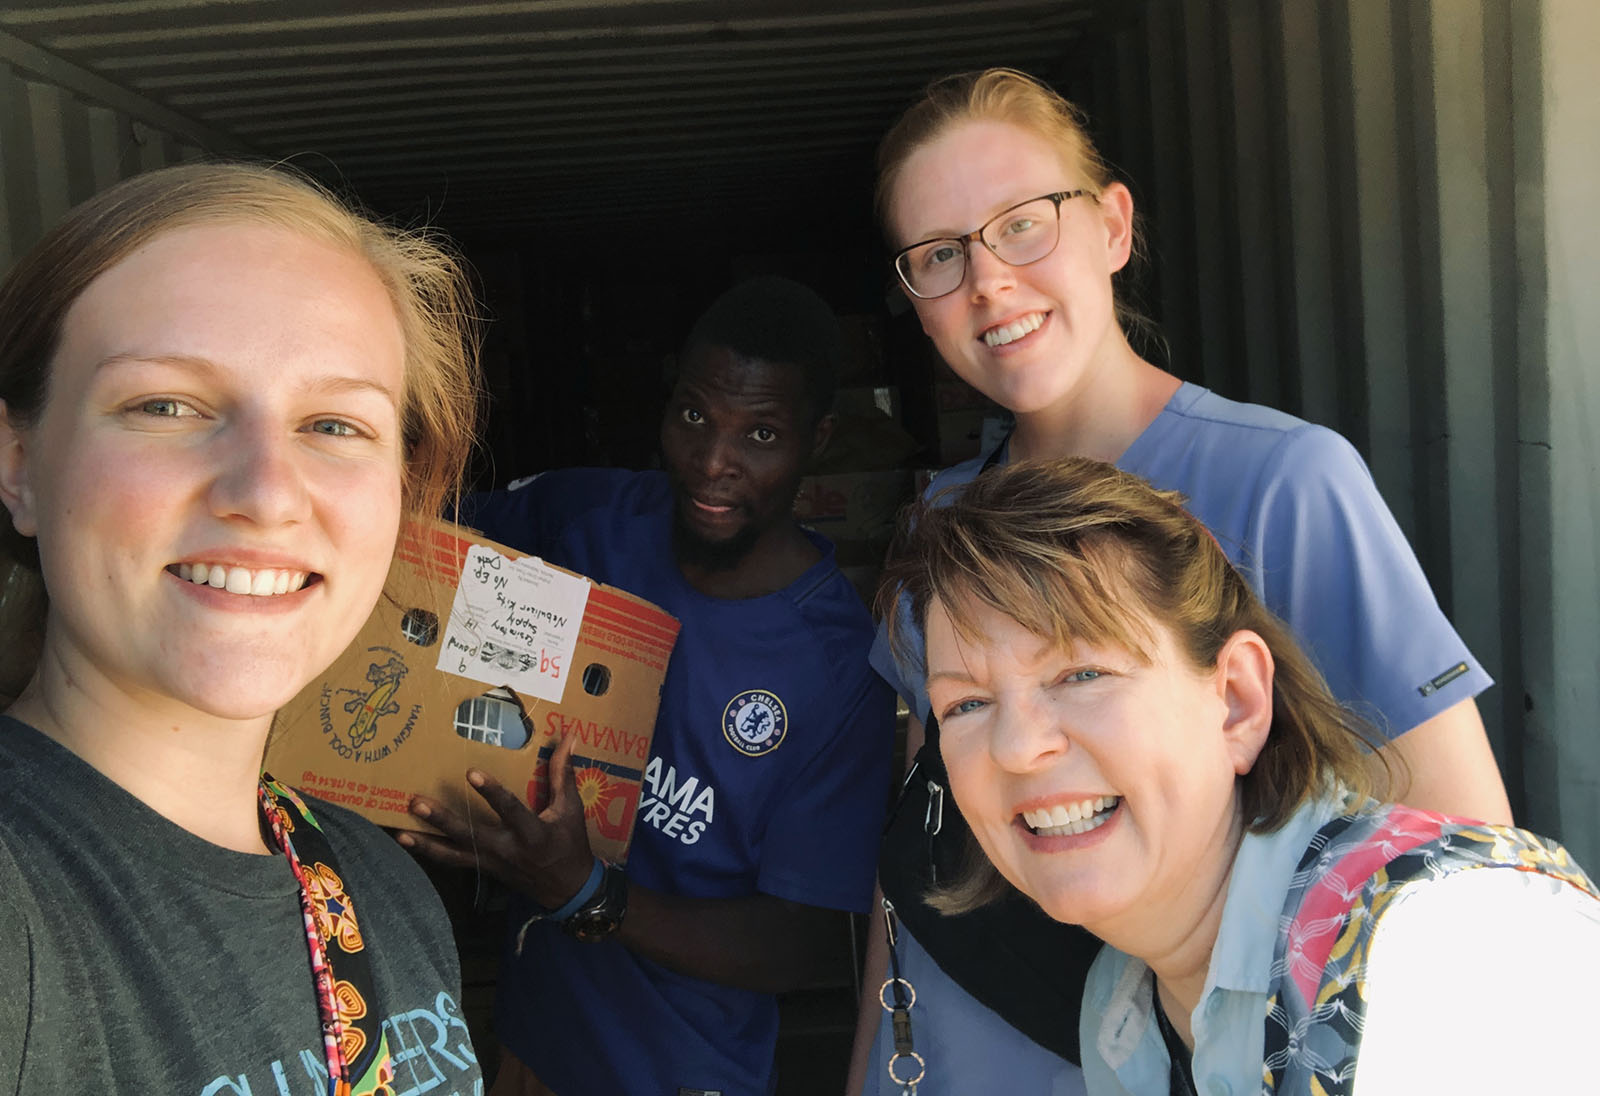 Tessa Copp, Michaela Walker and Michelle Fleig-Palmer pause for a photo while distributing donations during their trip to Zambia. (Courtesy photo)